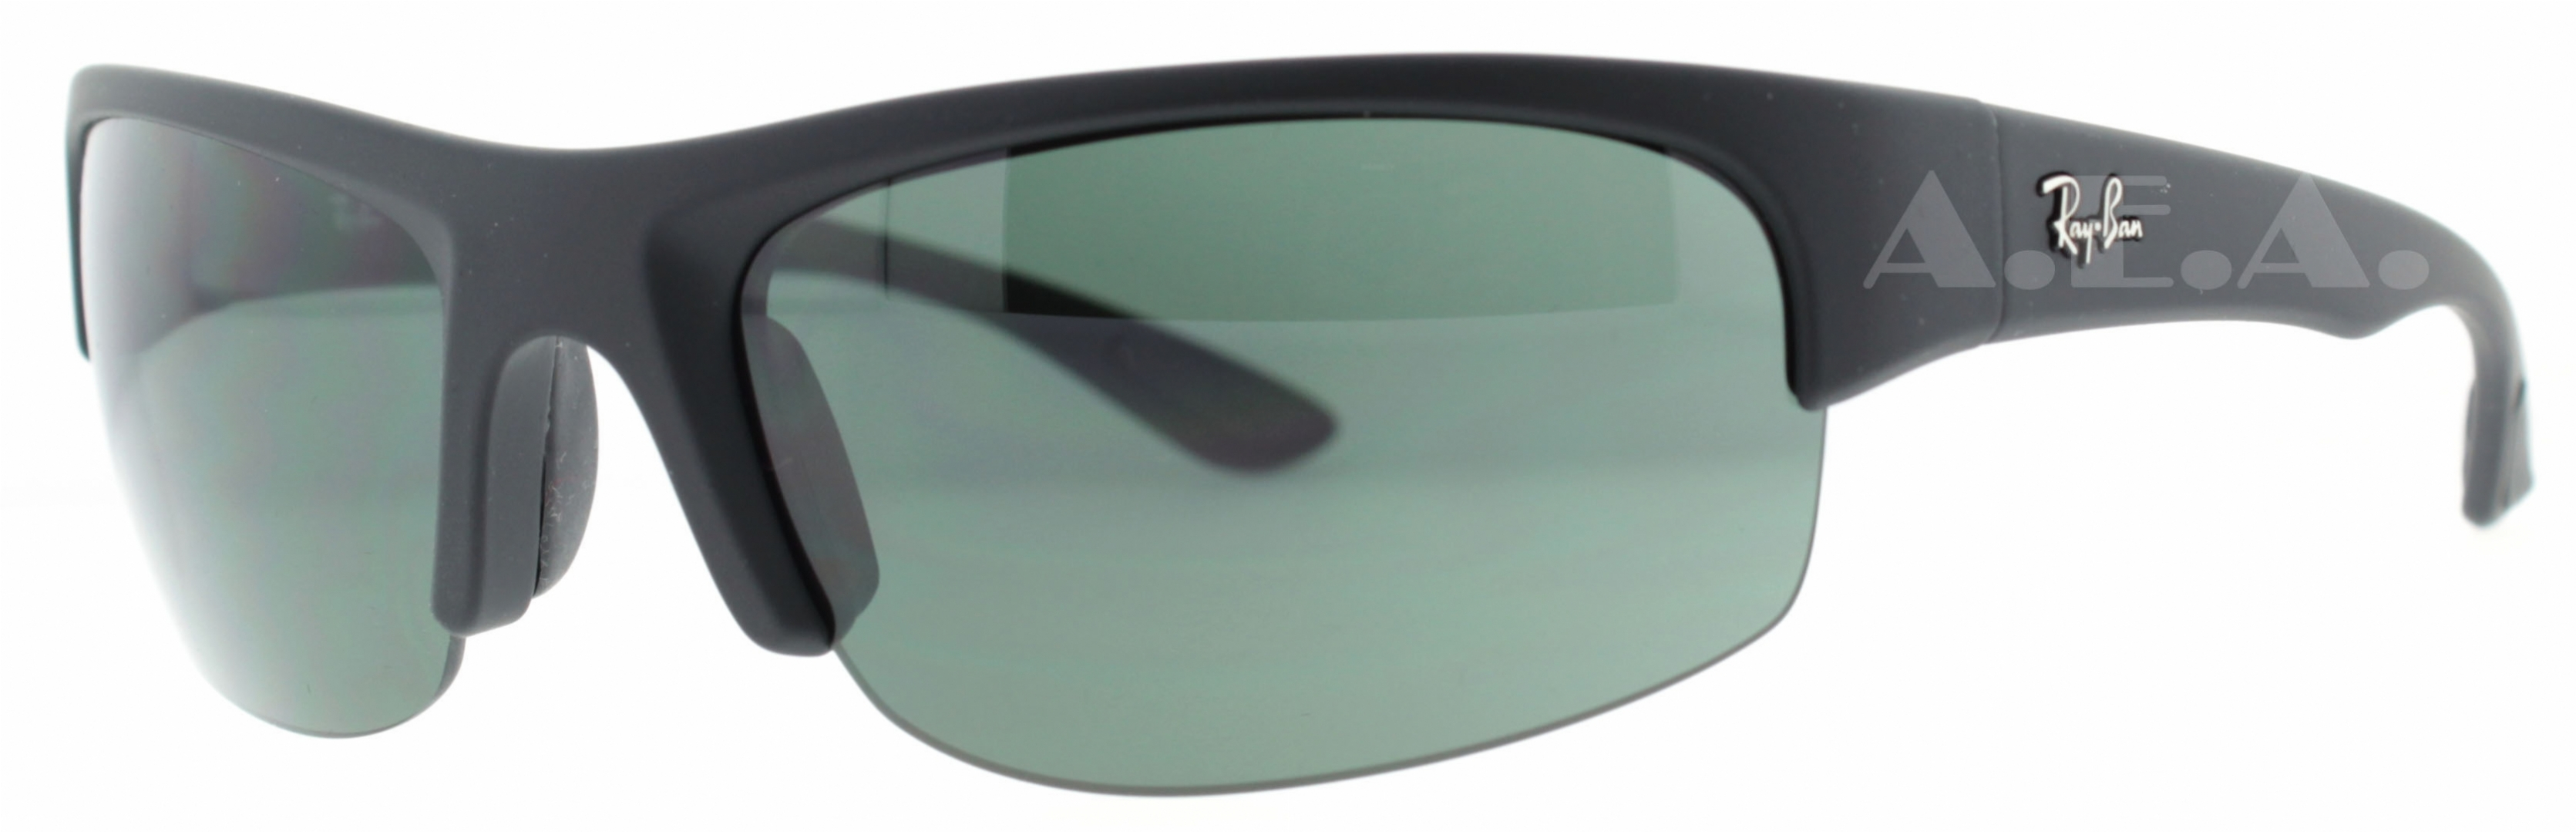 5af84929d7 Ray Ban 4173 Price « One More Soul